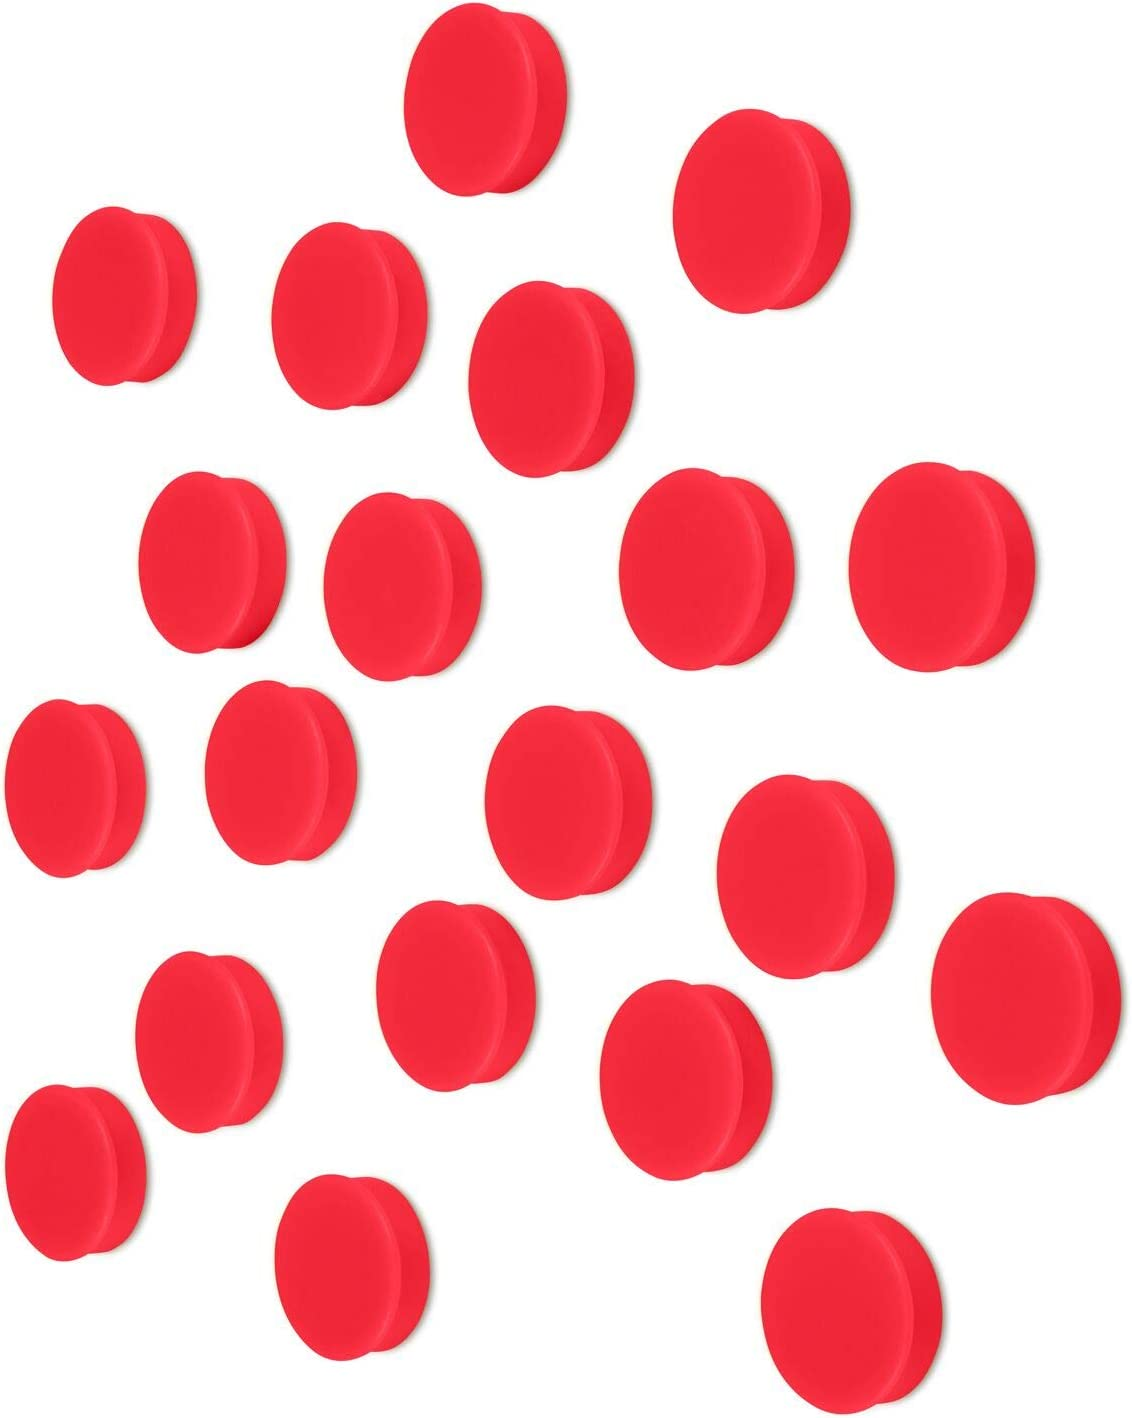 Scribble 1 Inch Red Office Magnets (20 Pack), Colorful Round Refrigerator Magnets, Perfect for Whiteboards, Lockers & Fridge.